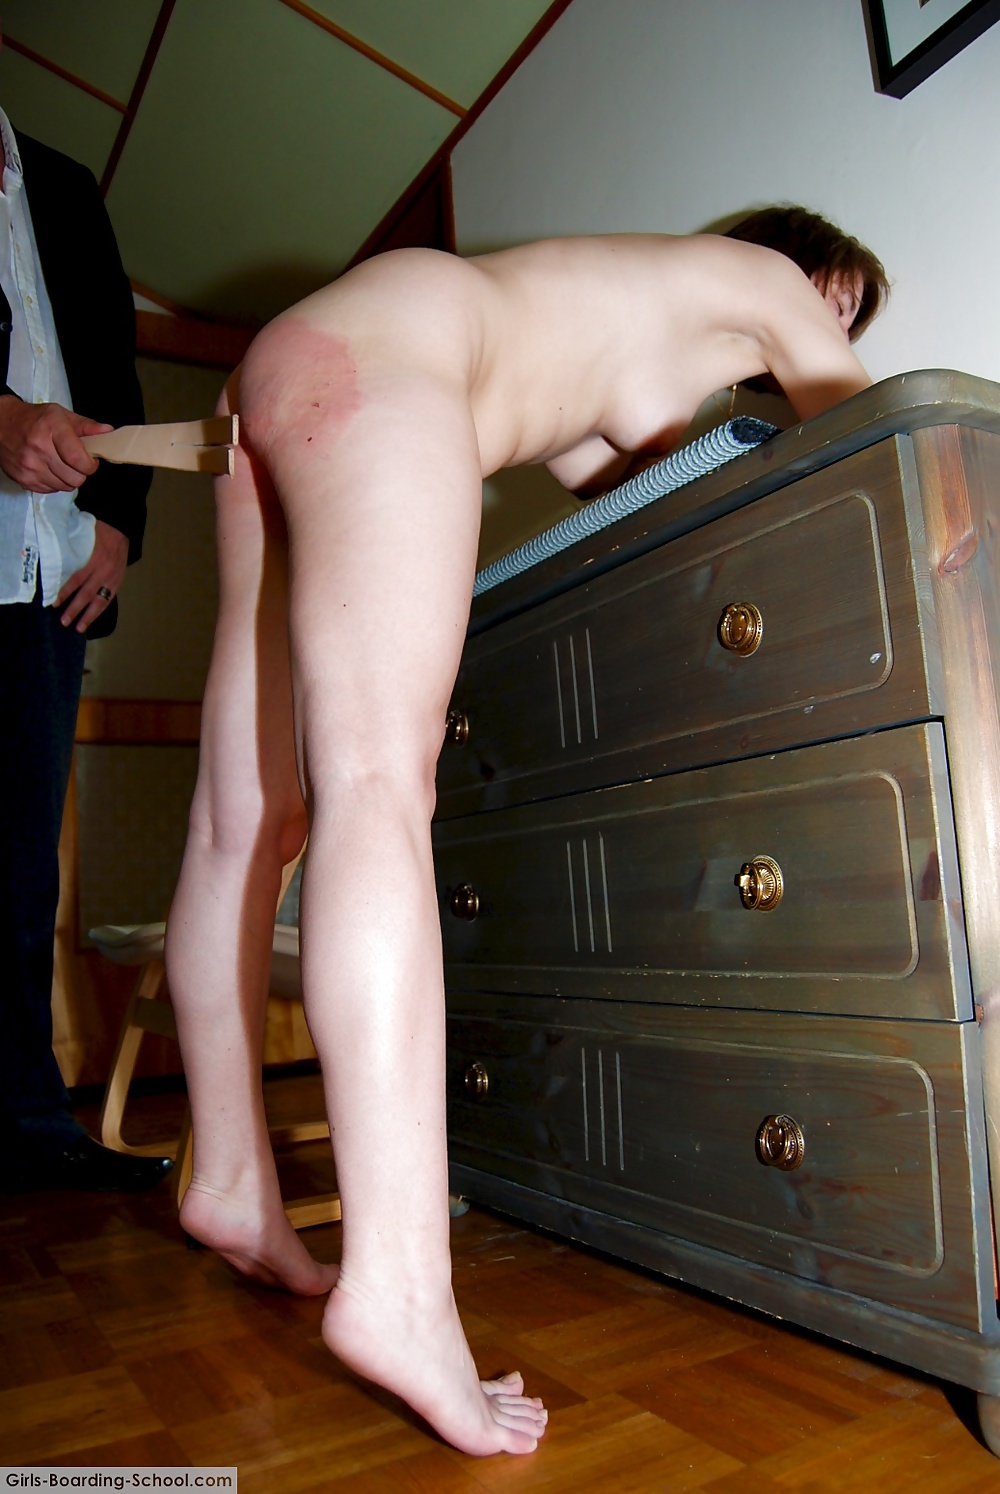 Naked boarding school #7